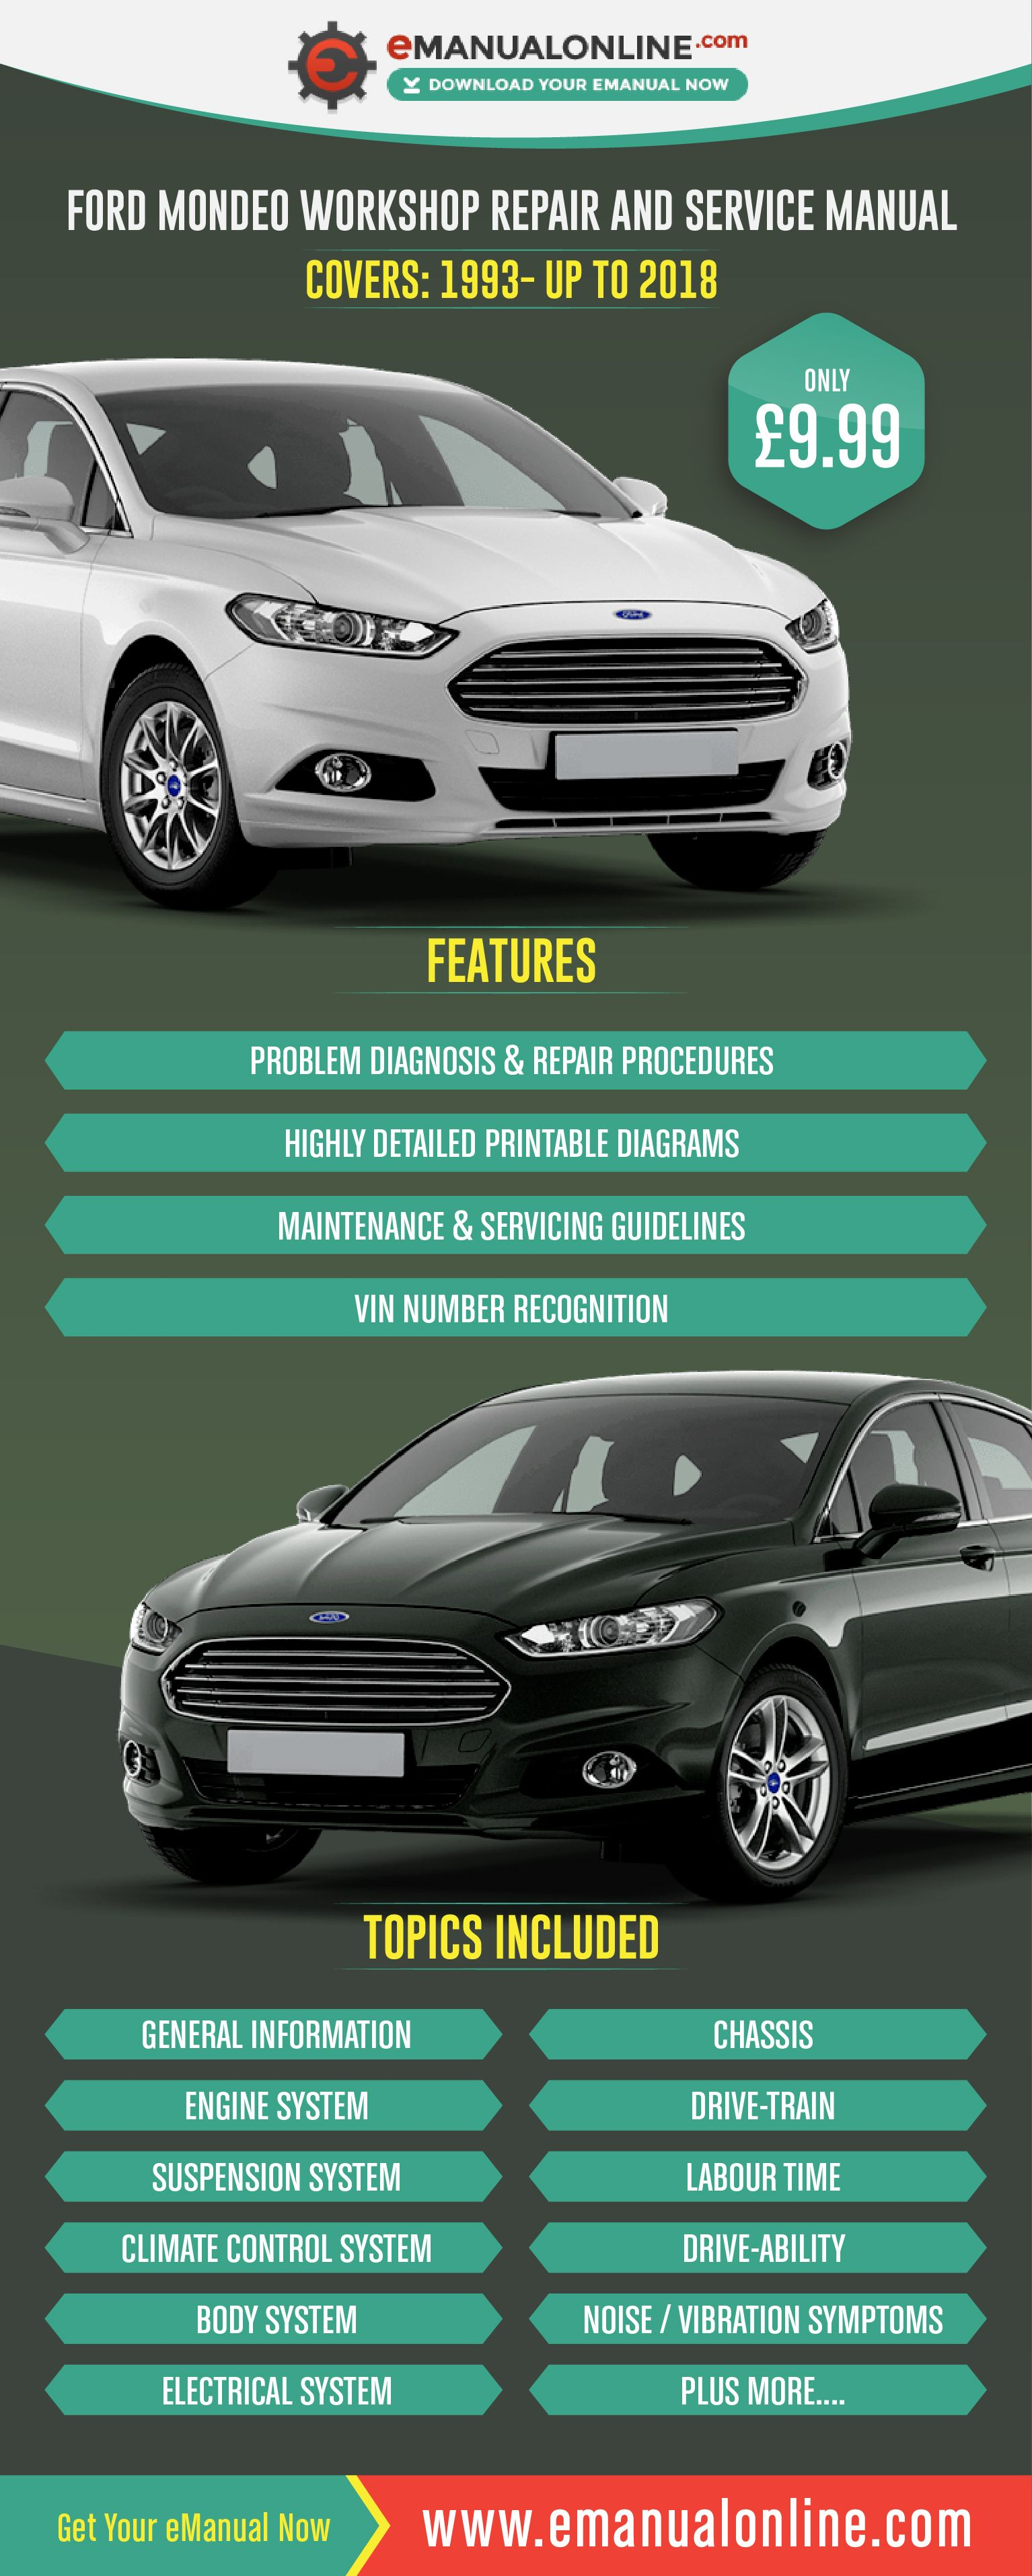 Ford Mondeo Workshop Repair And Service Manual This workshop manual  contains comprehensive data on repair procedures